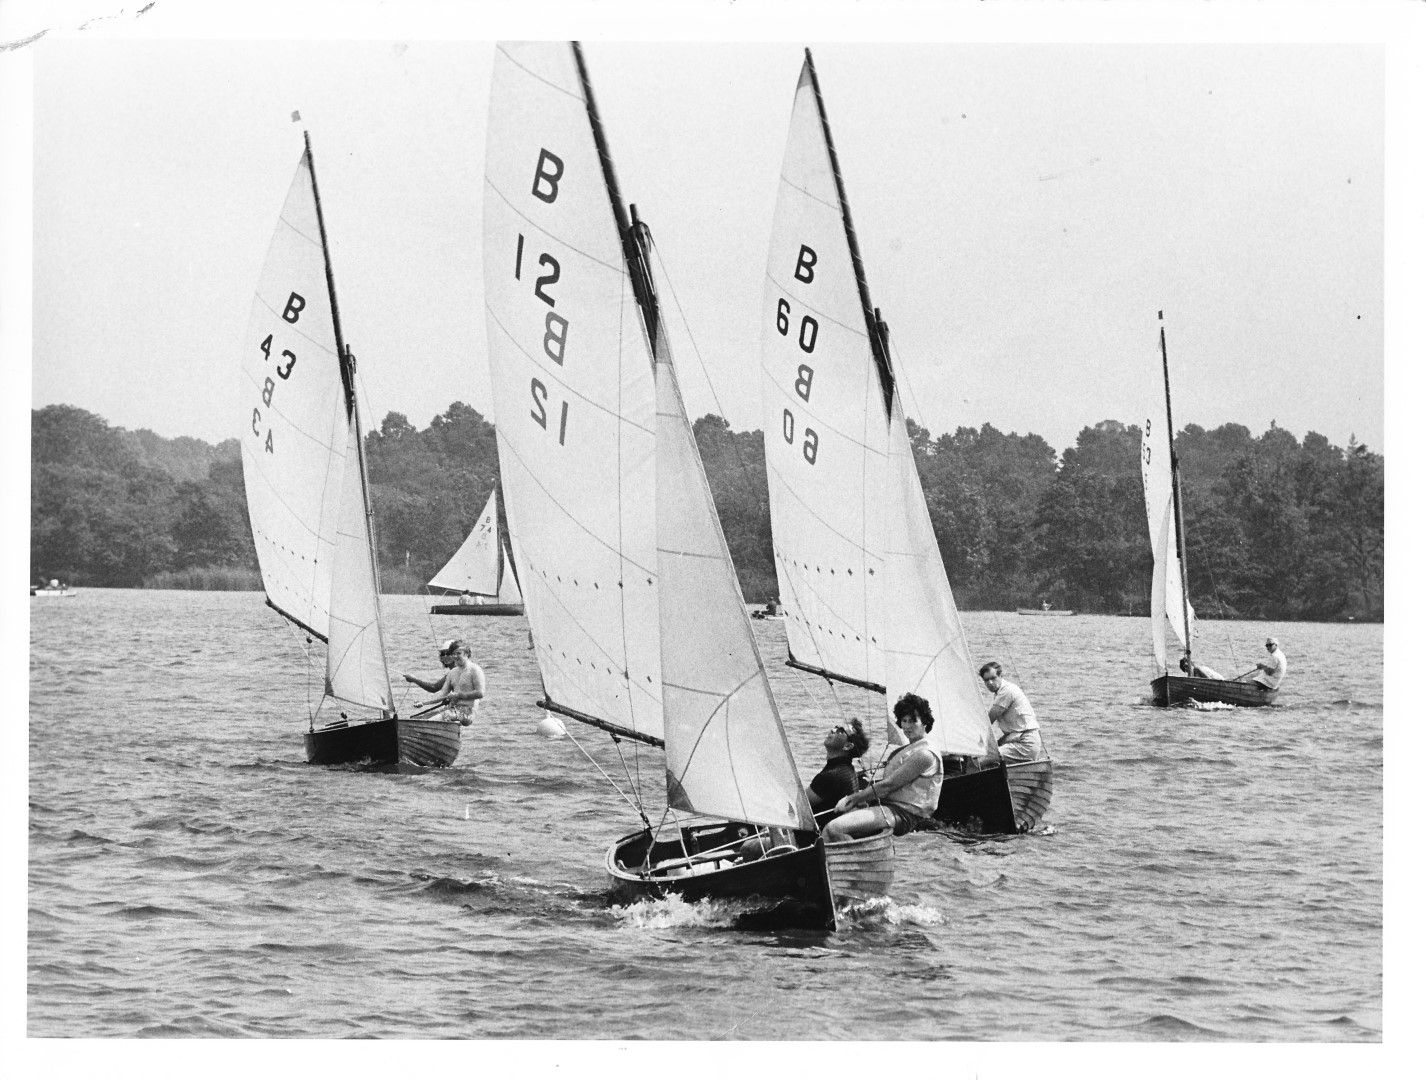 Marks Cup, Wroxham Broad 2nd Jul 1973